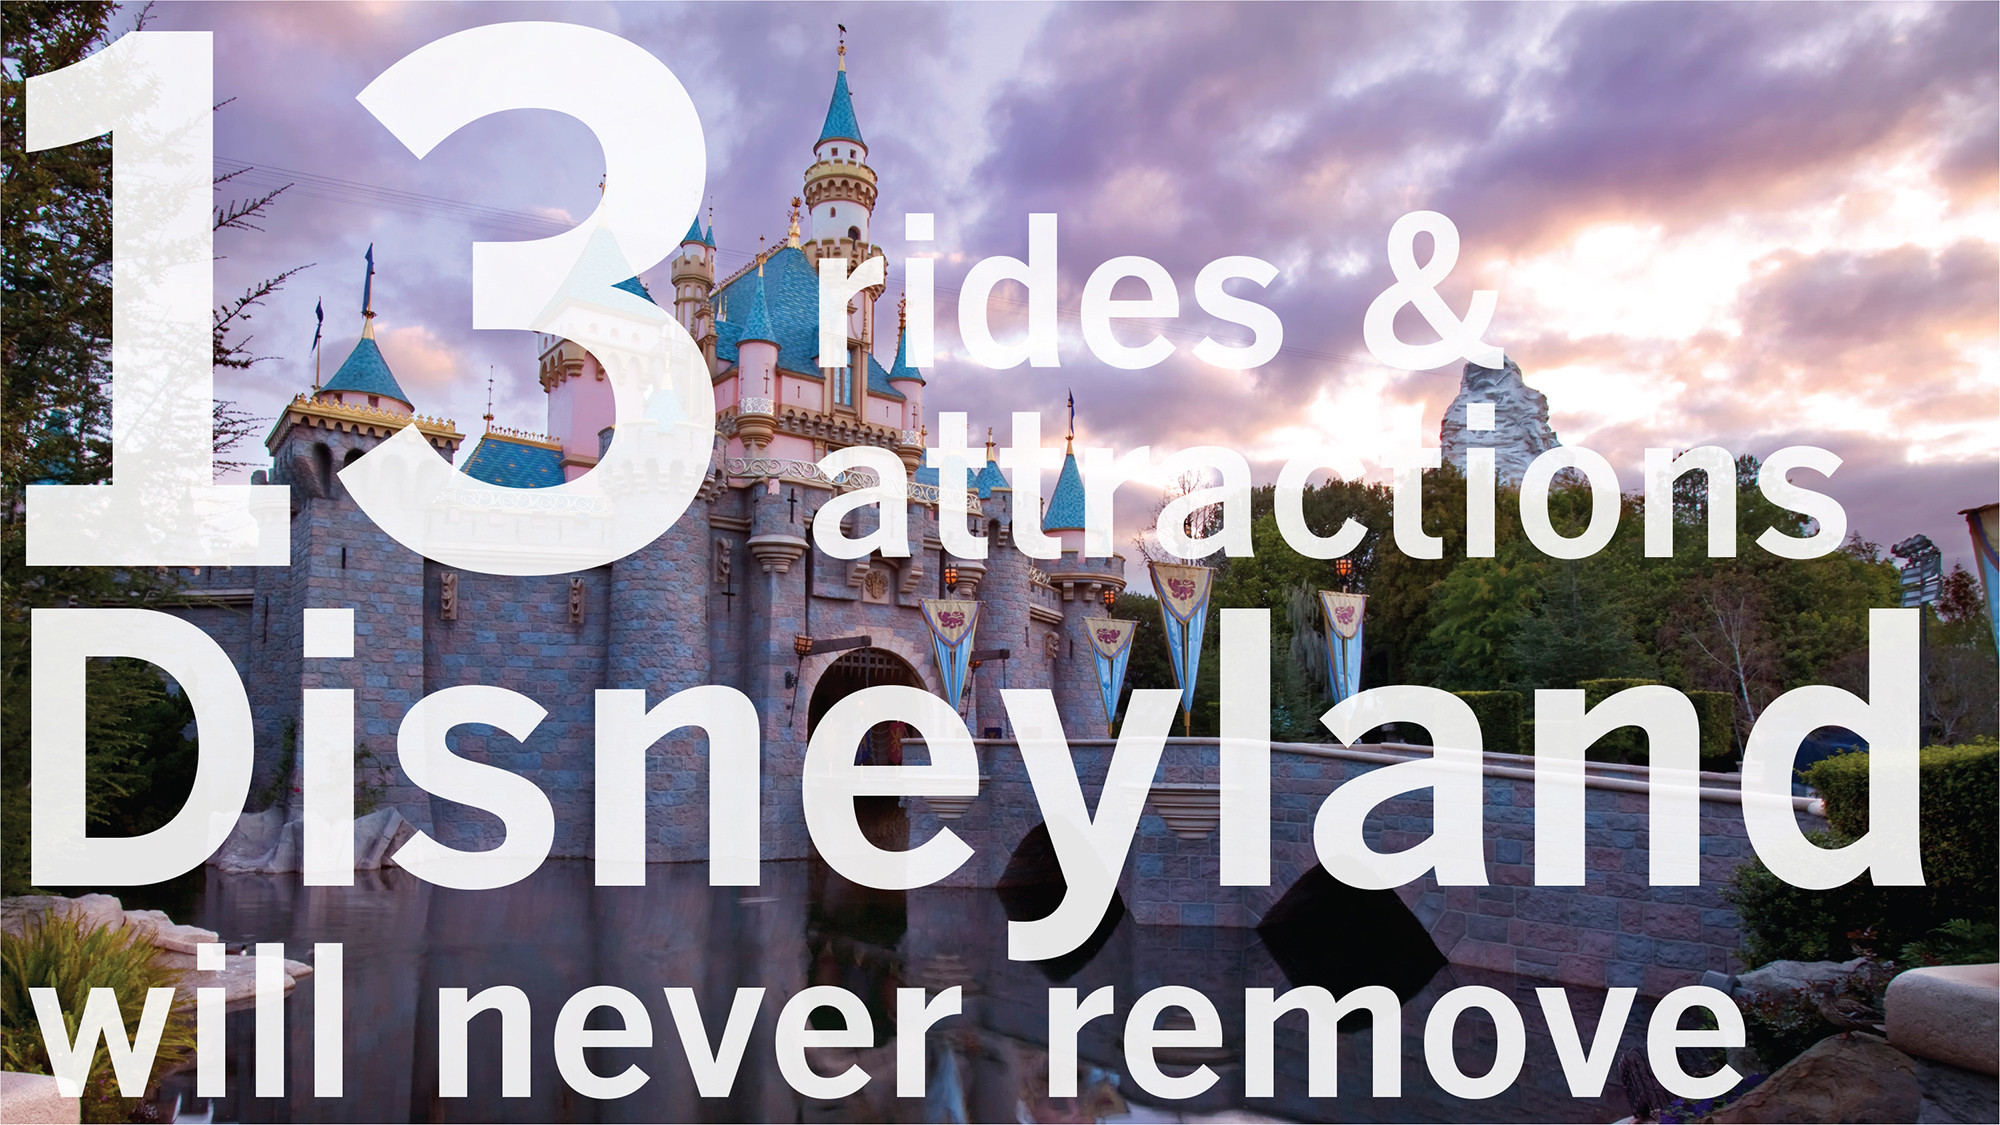 Disneyland 2055 what the future may hold for the original disney park la times